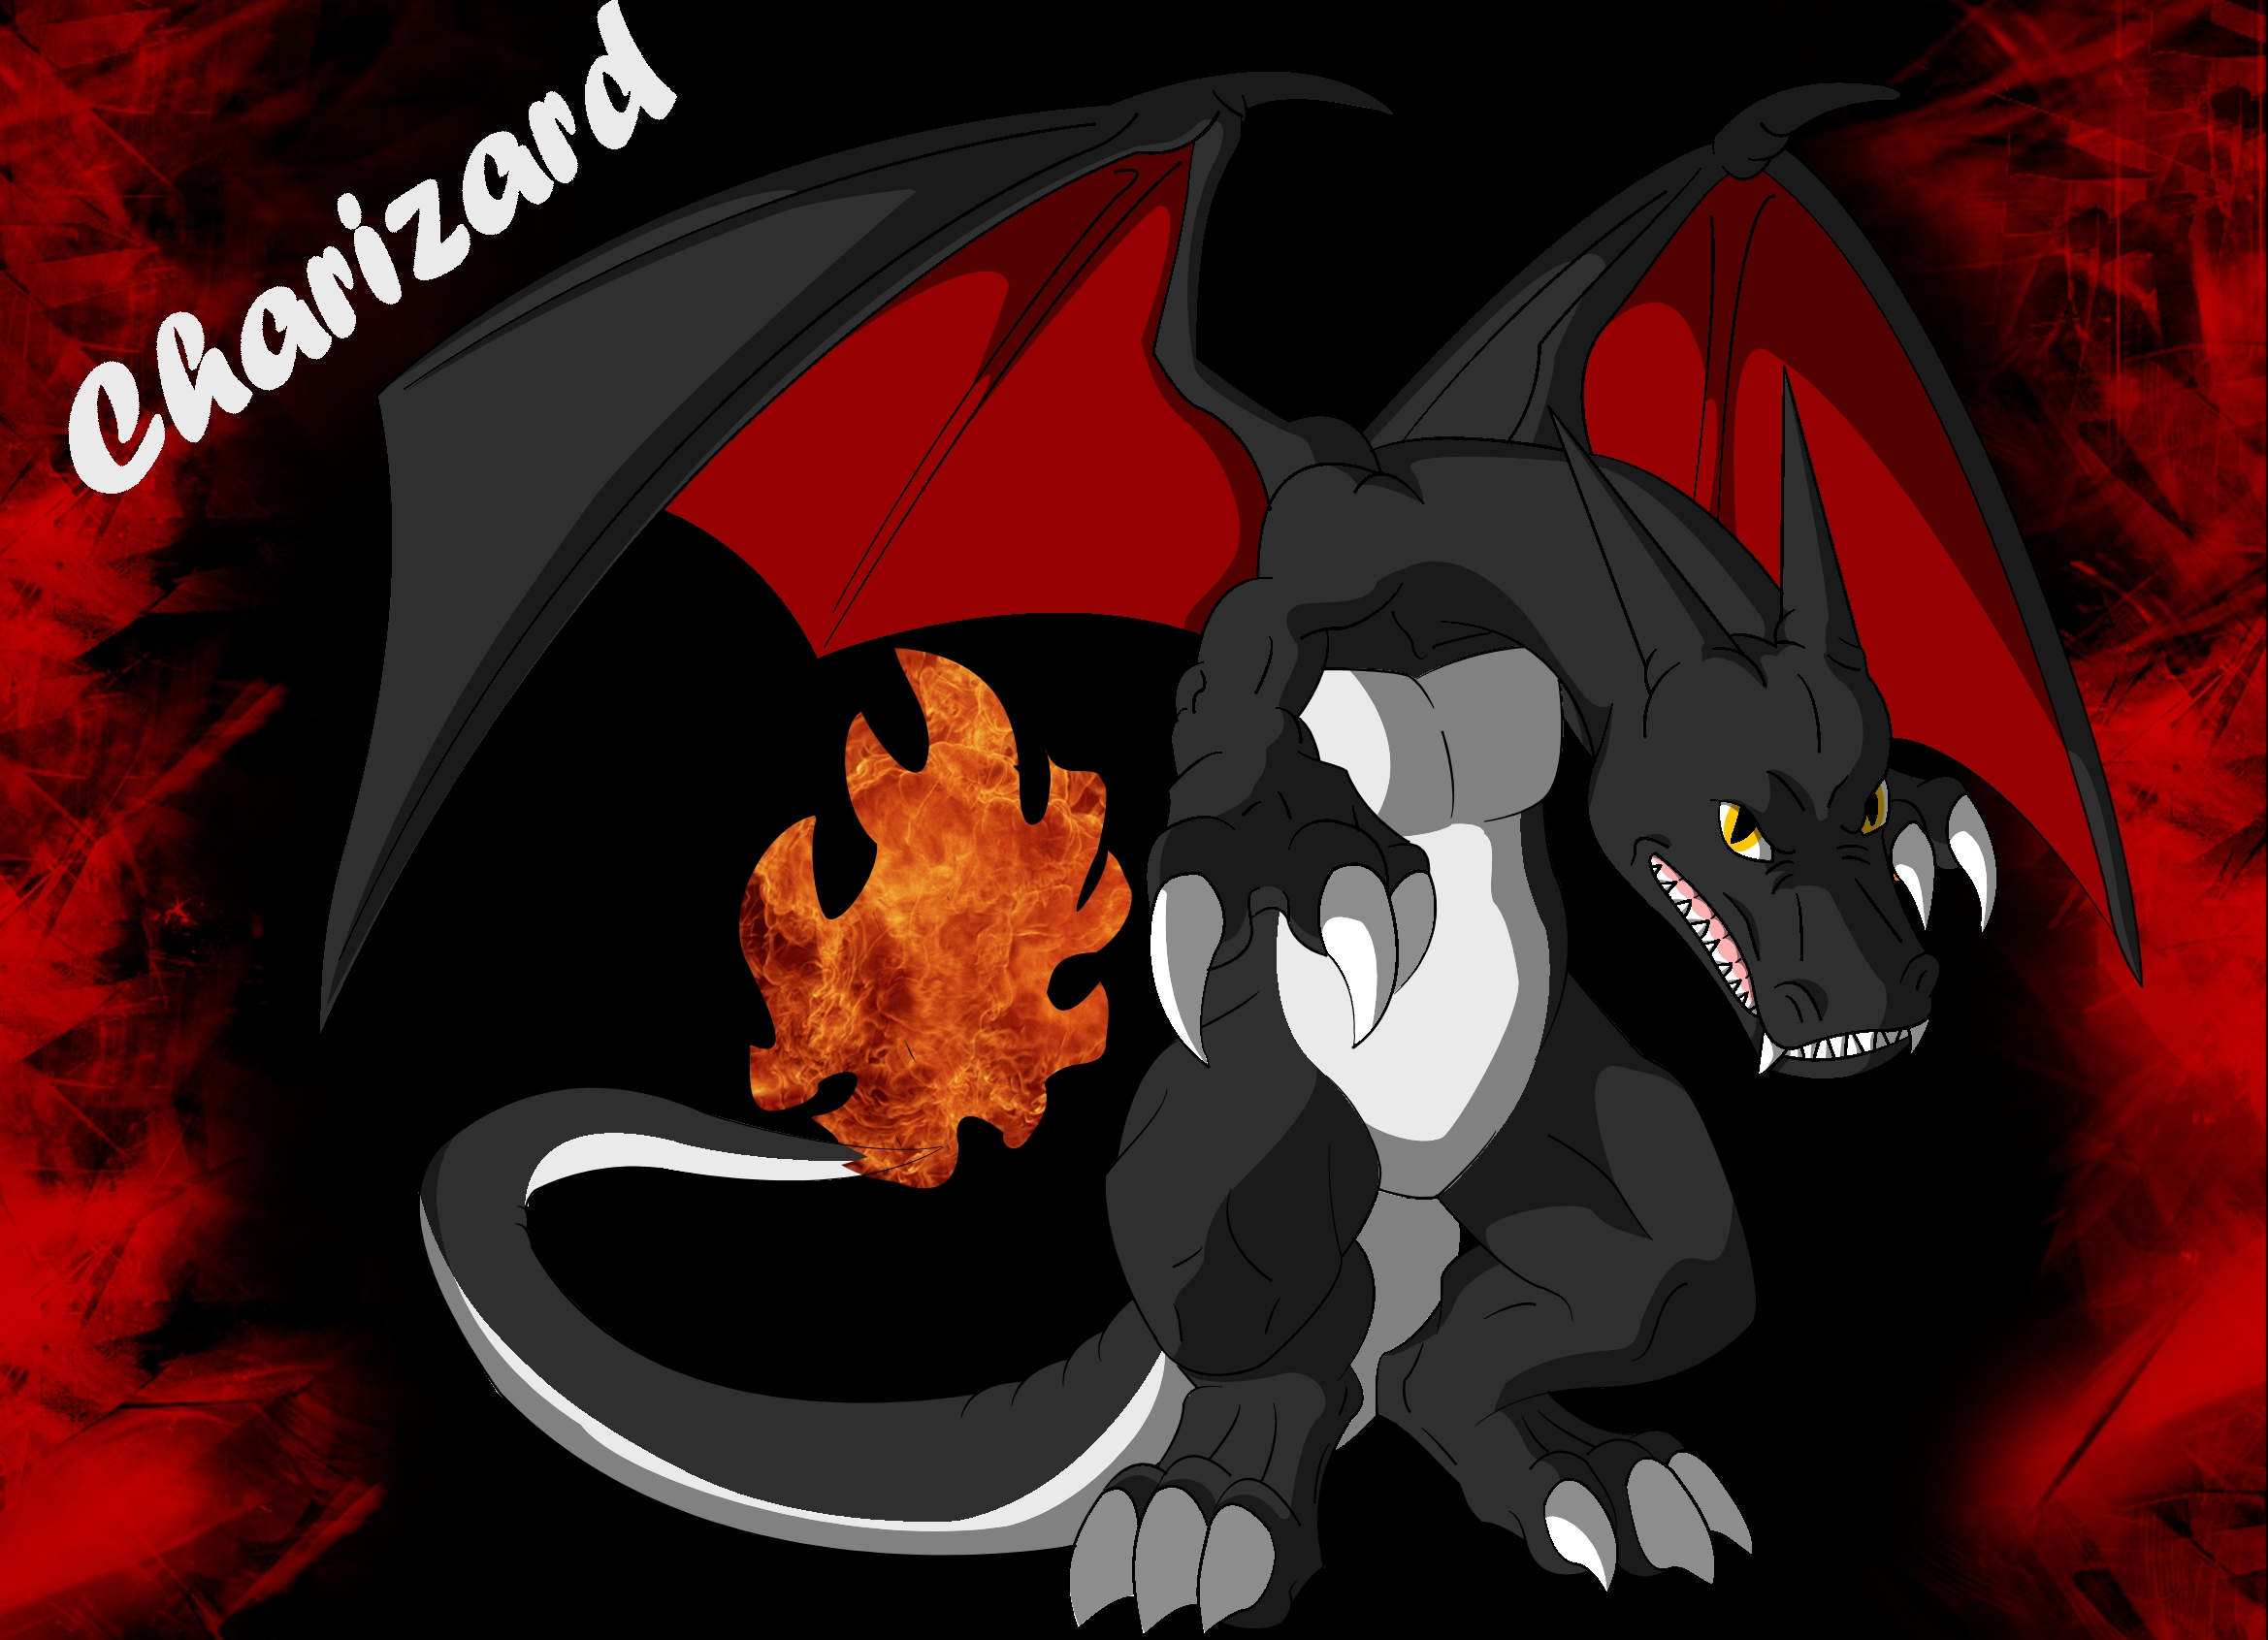 The wallpaper currently on ryuujin - Shiny Charizard By Ryuujin Shizunamo27 Shiny Charizard By Ryuujin Shizunamo27